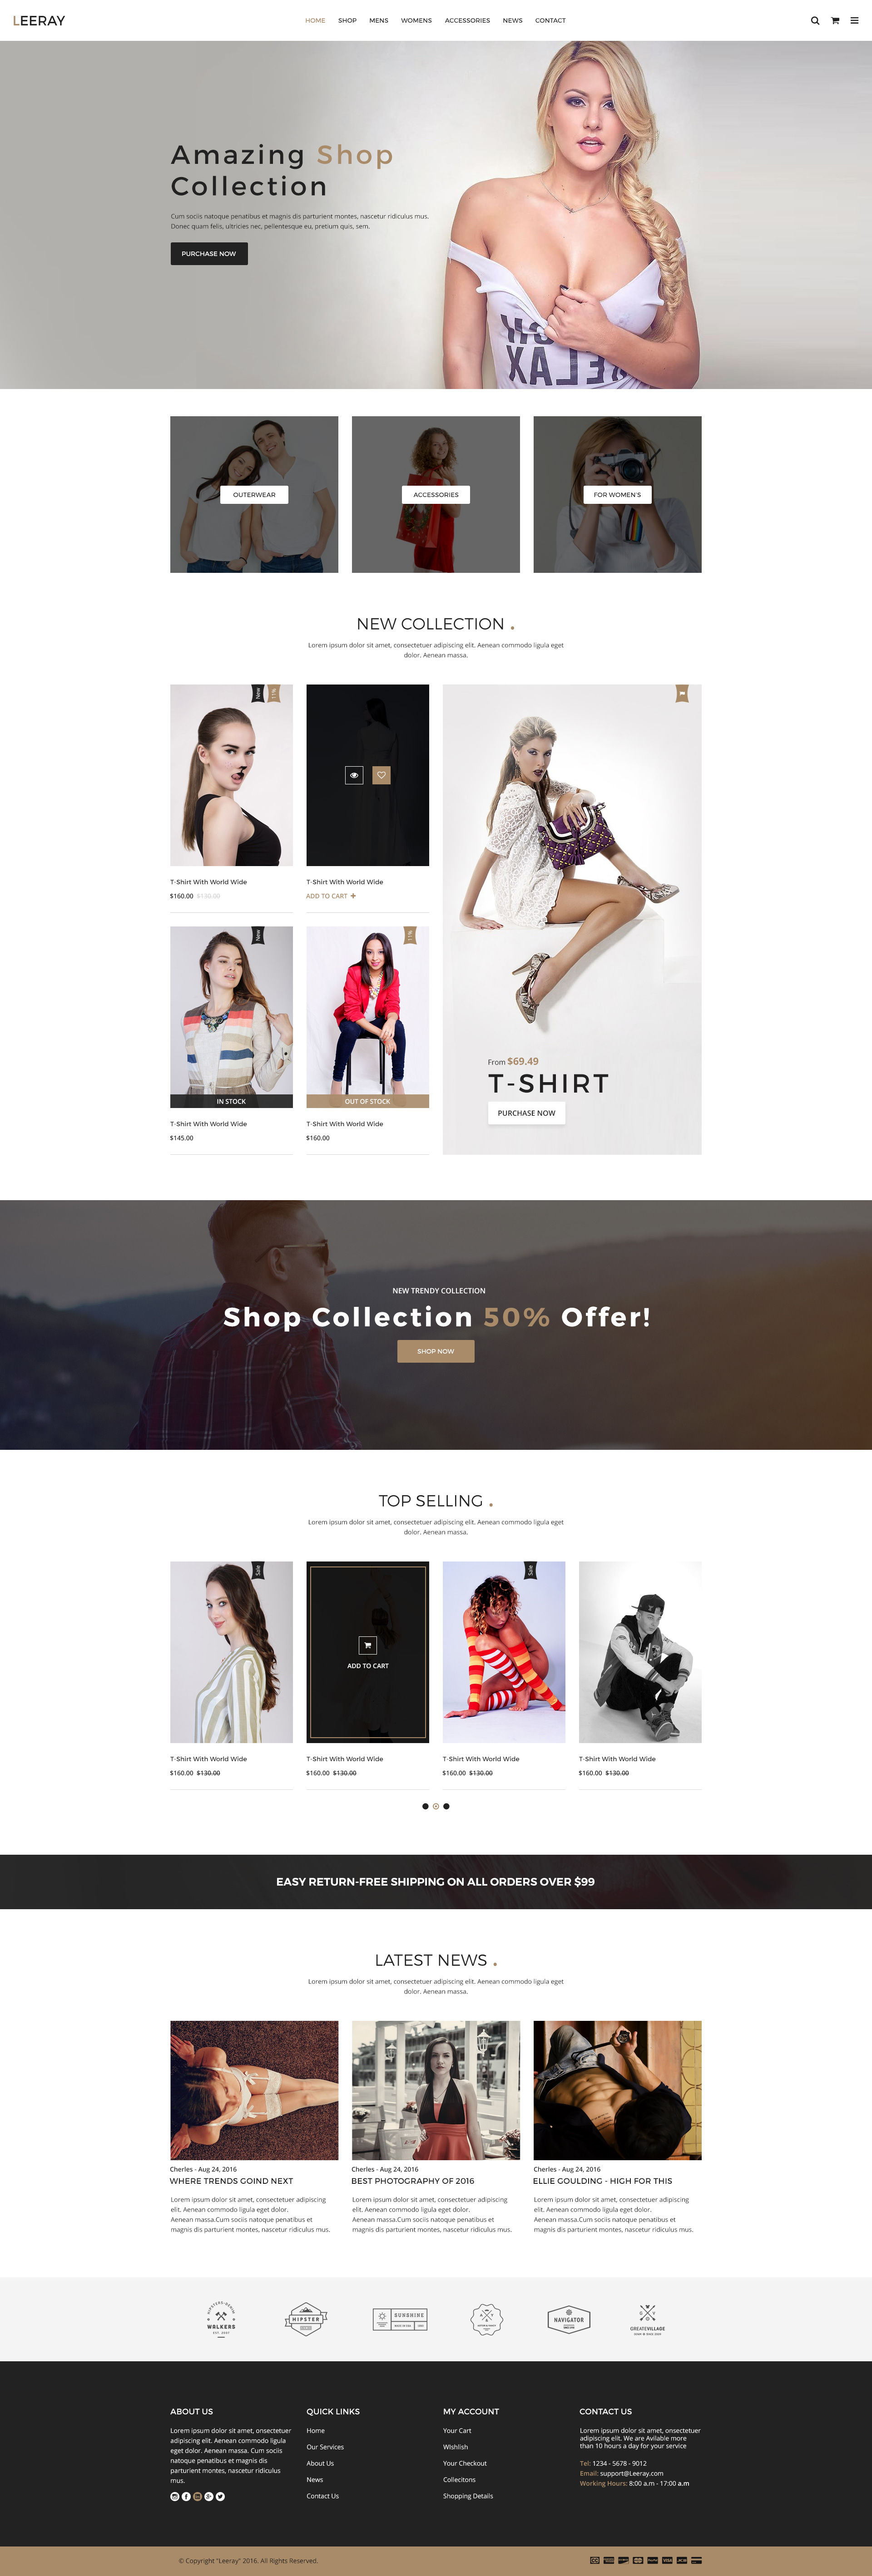 Leeray Ecommerce Psd Template By Mine Tech Themeforest